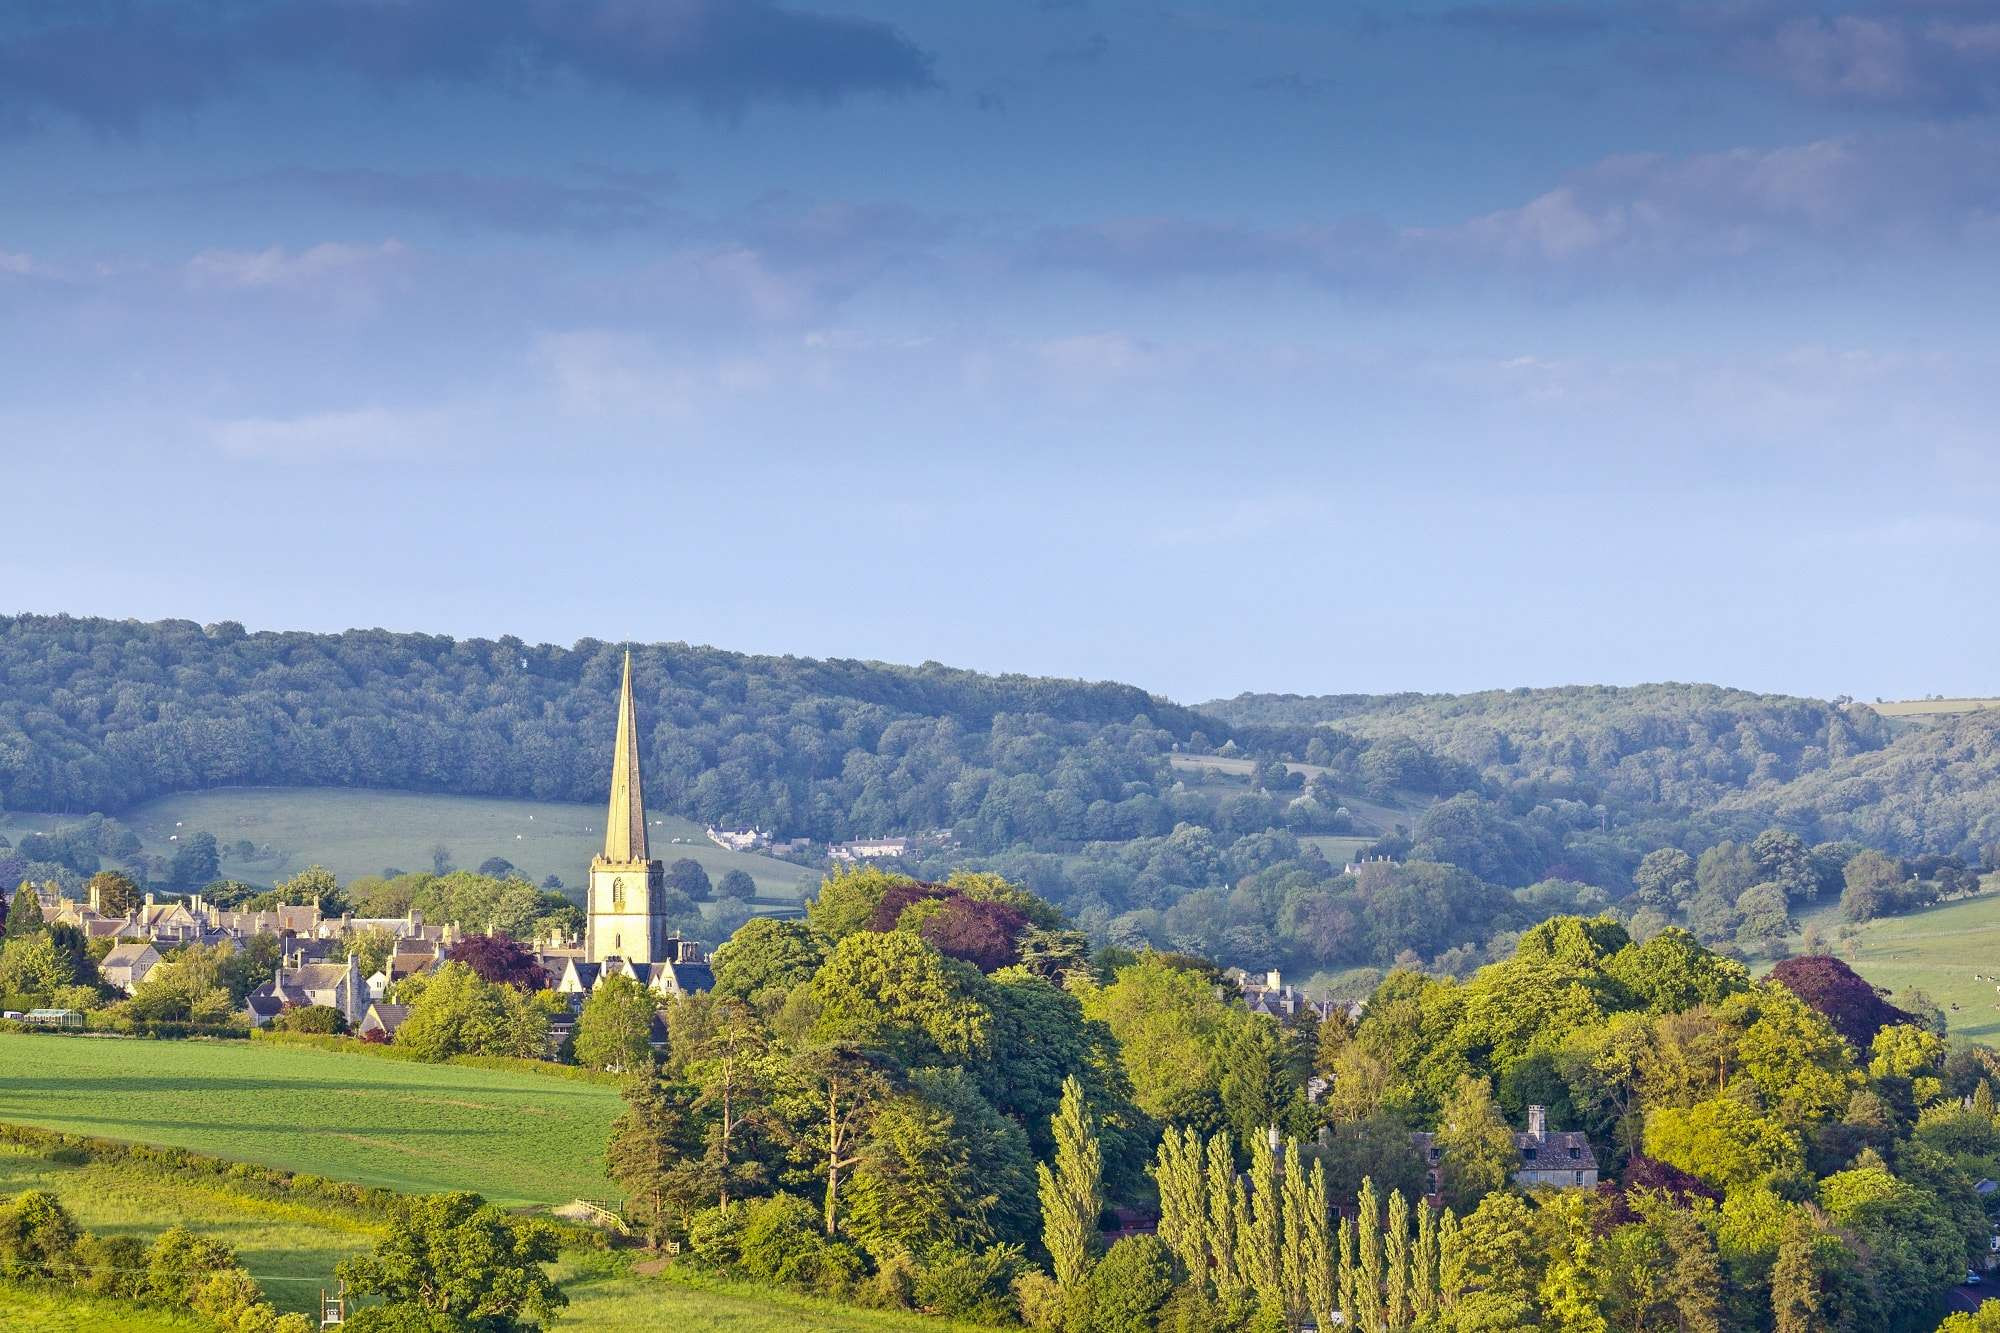 Image of spire of St. Lawrence, Stroud, Cotswold Way, walks in Chipping Campden